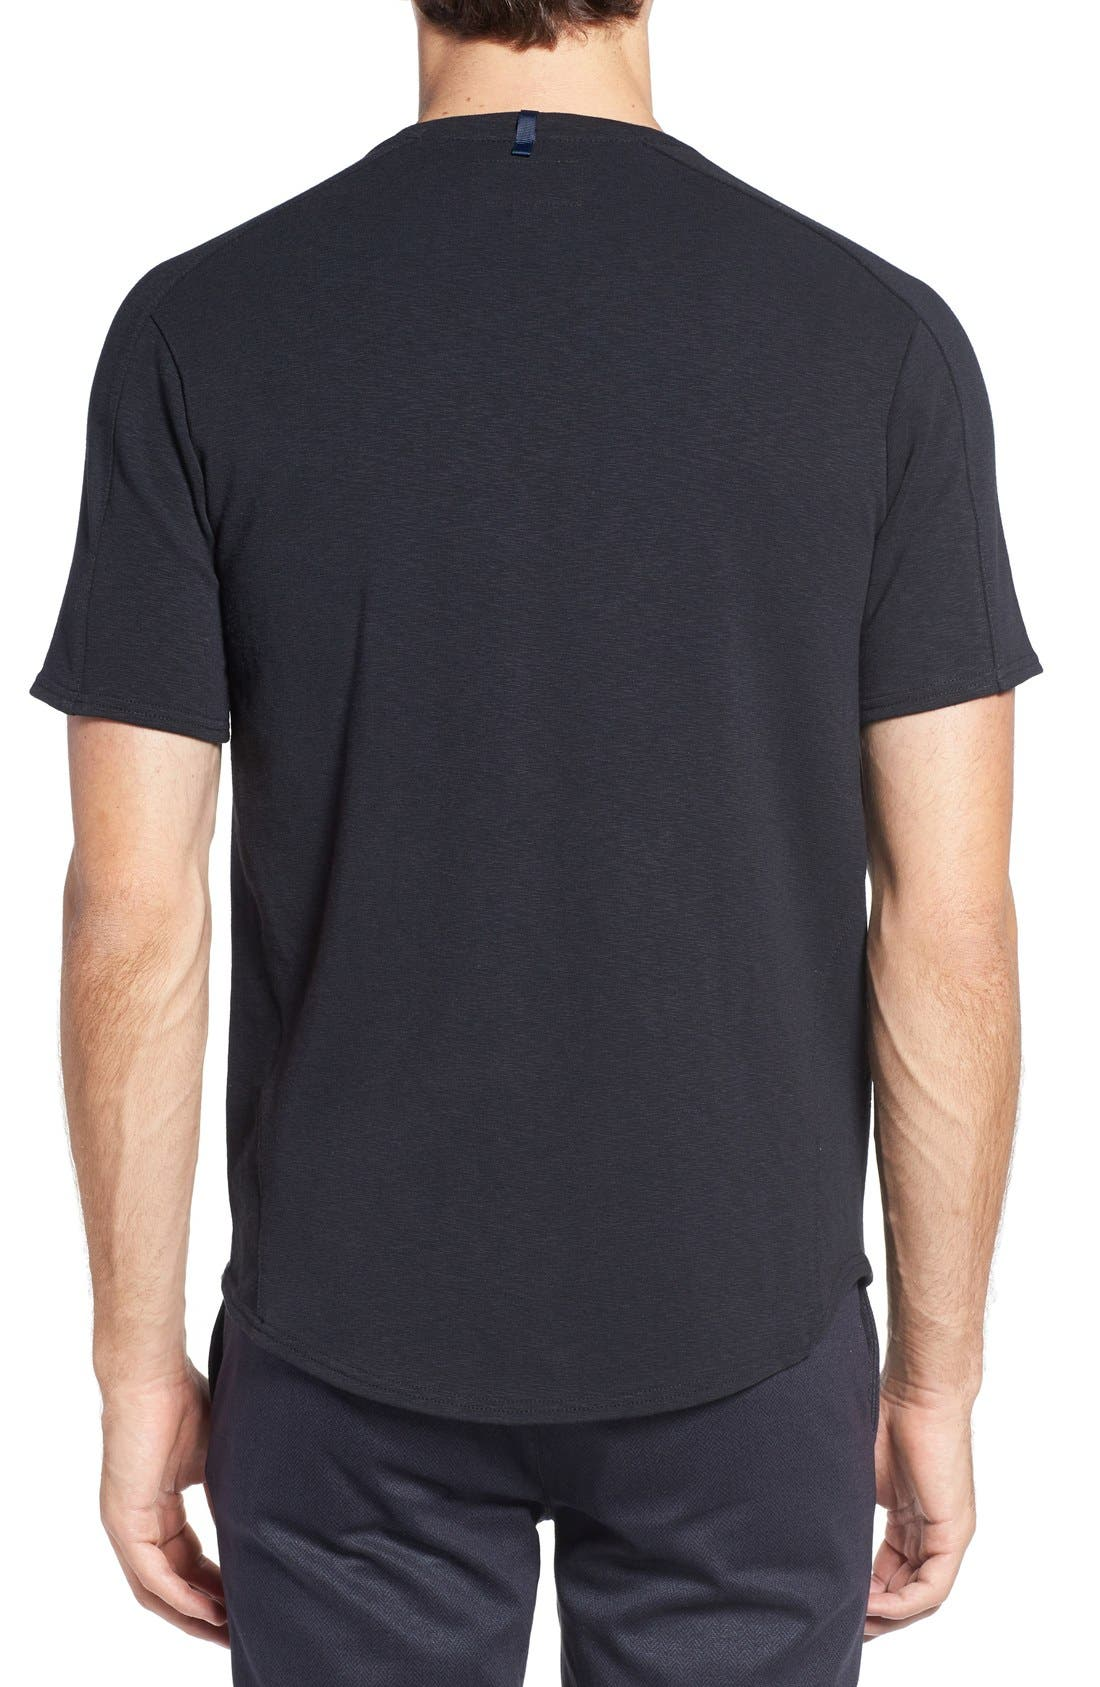 Douglas Cotton Blend T-Shirt,                             Alternate thumbnail 2, color,                             001